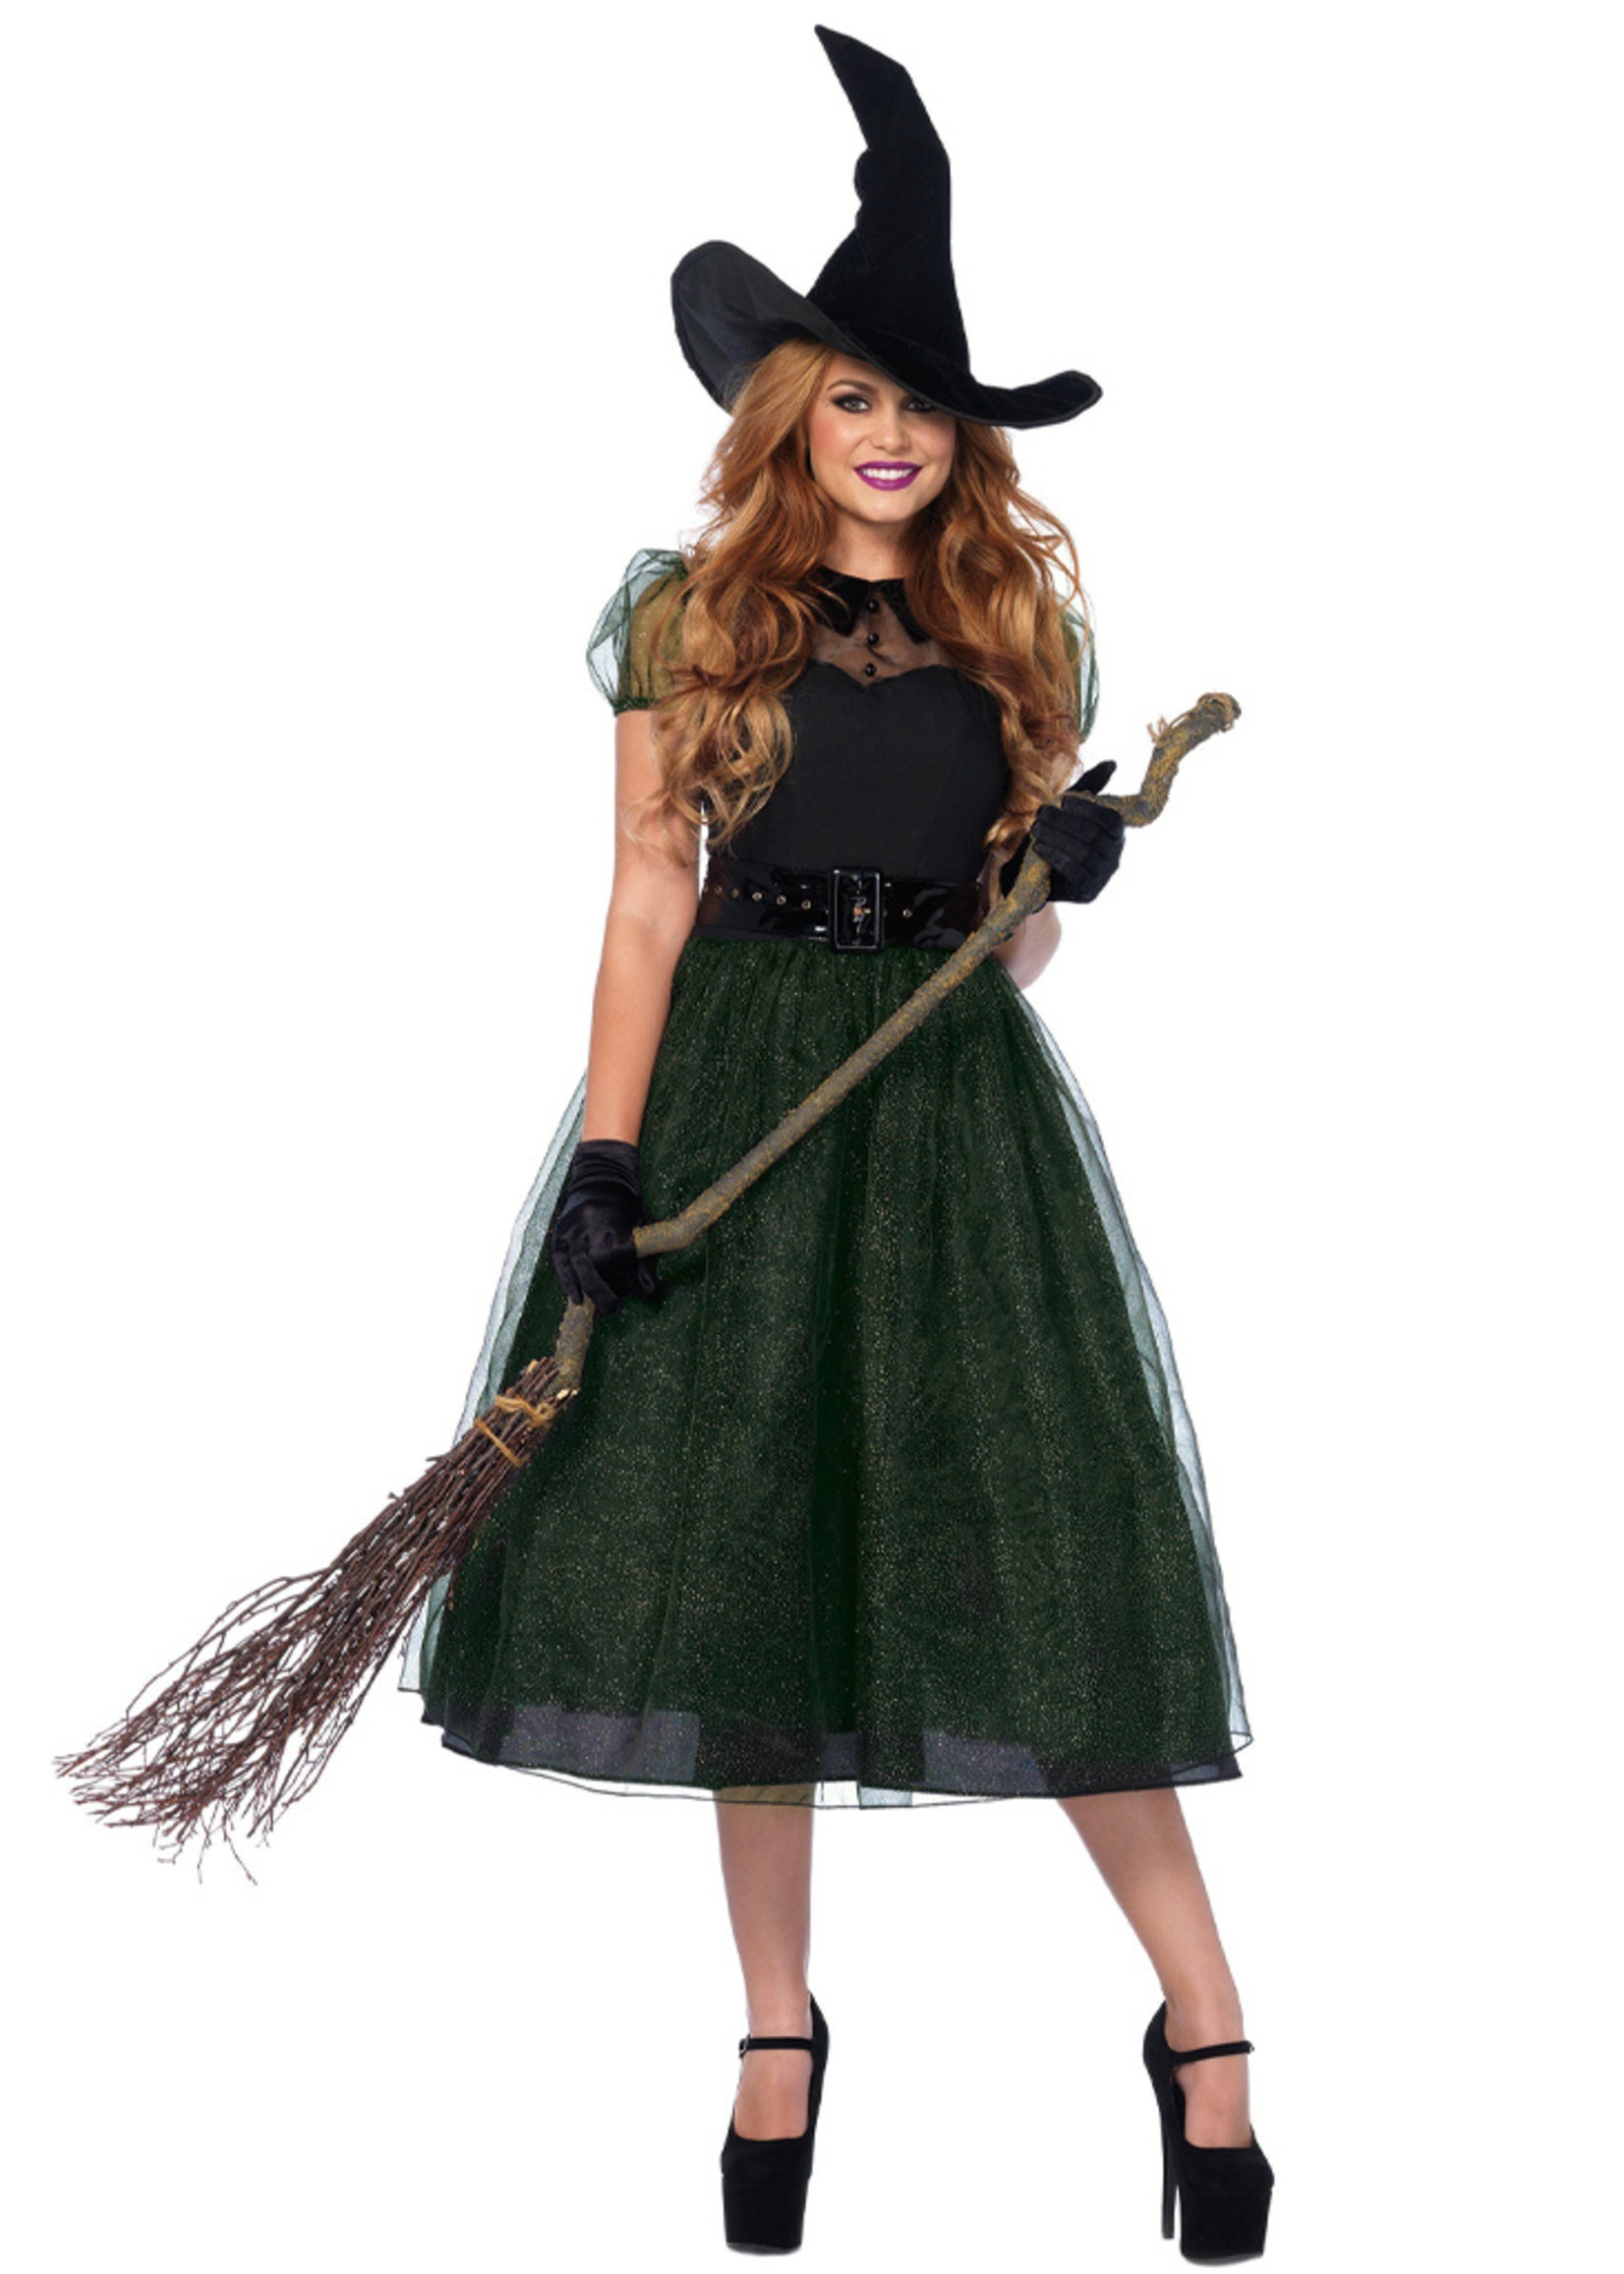 Darling Spellcaster Costume - Women's